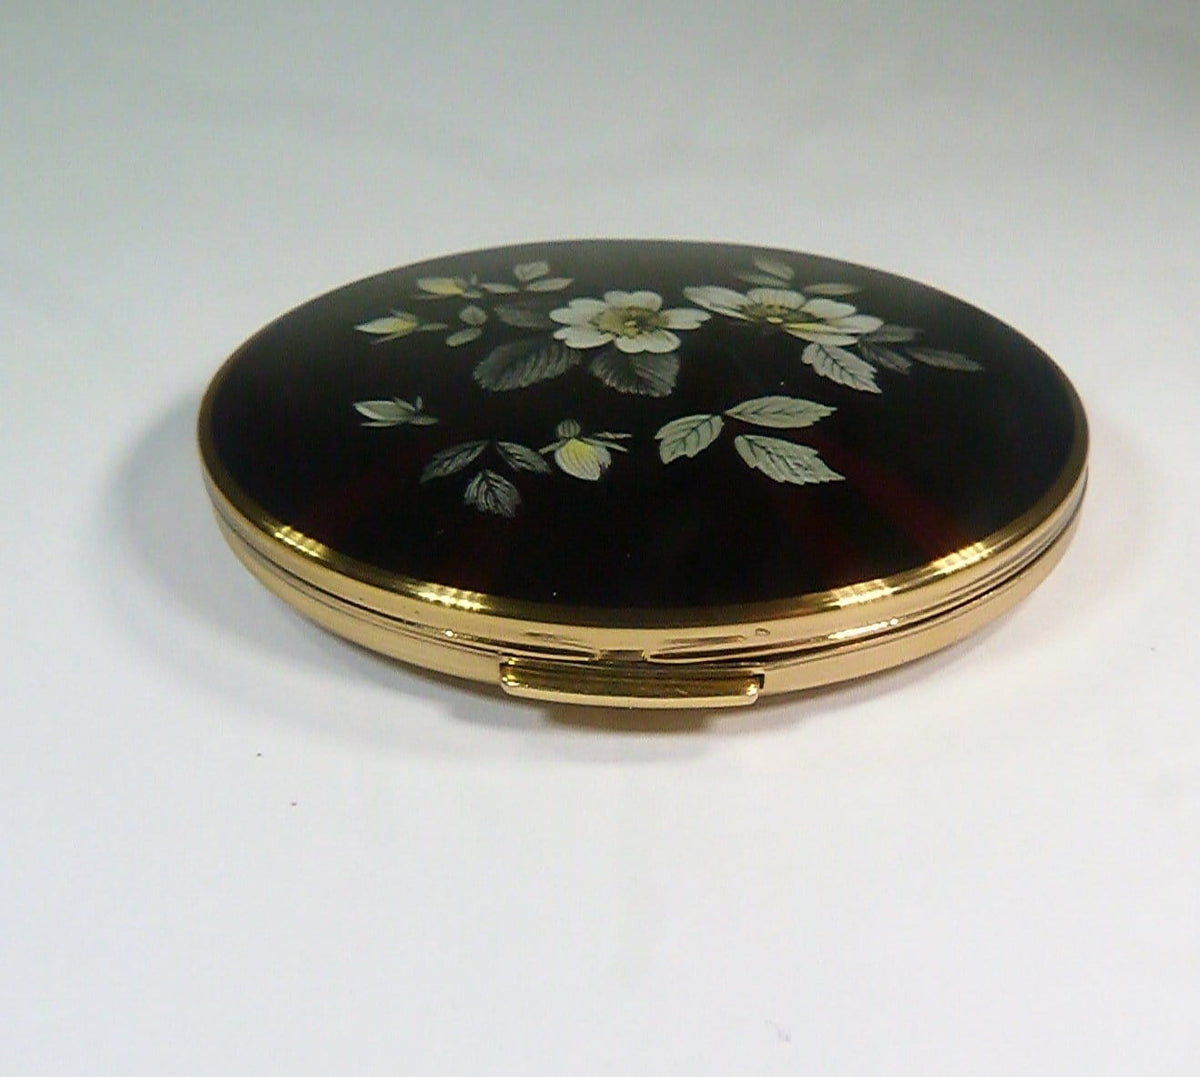 free shipping vintage compacts